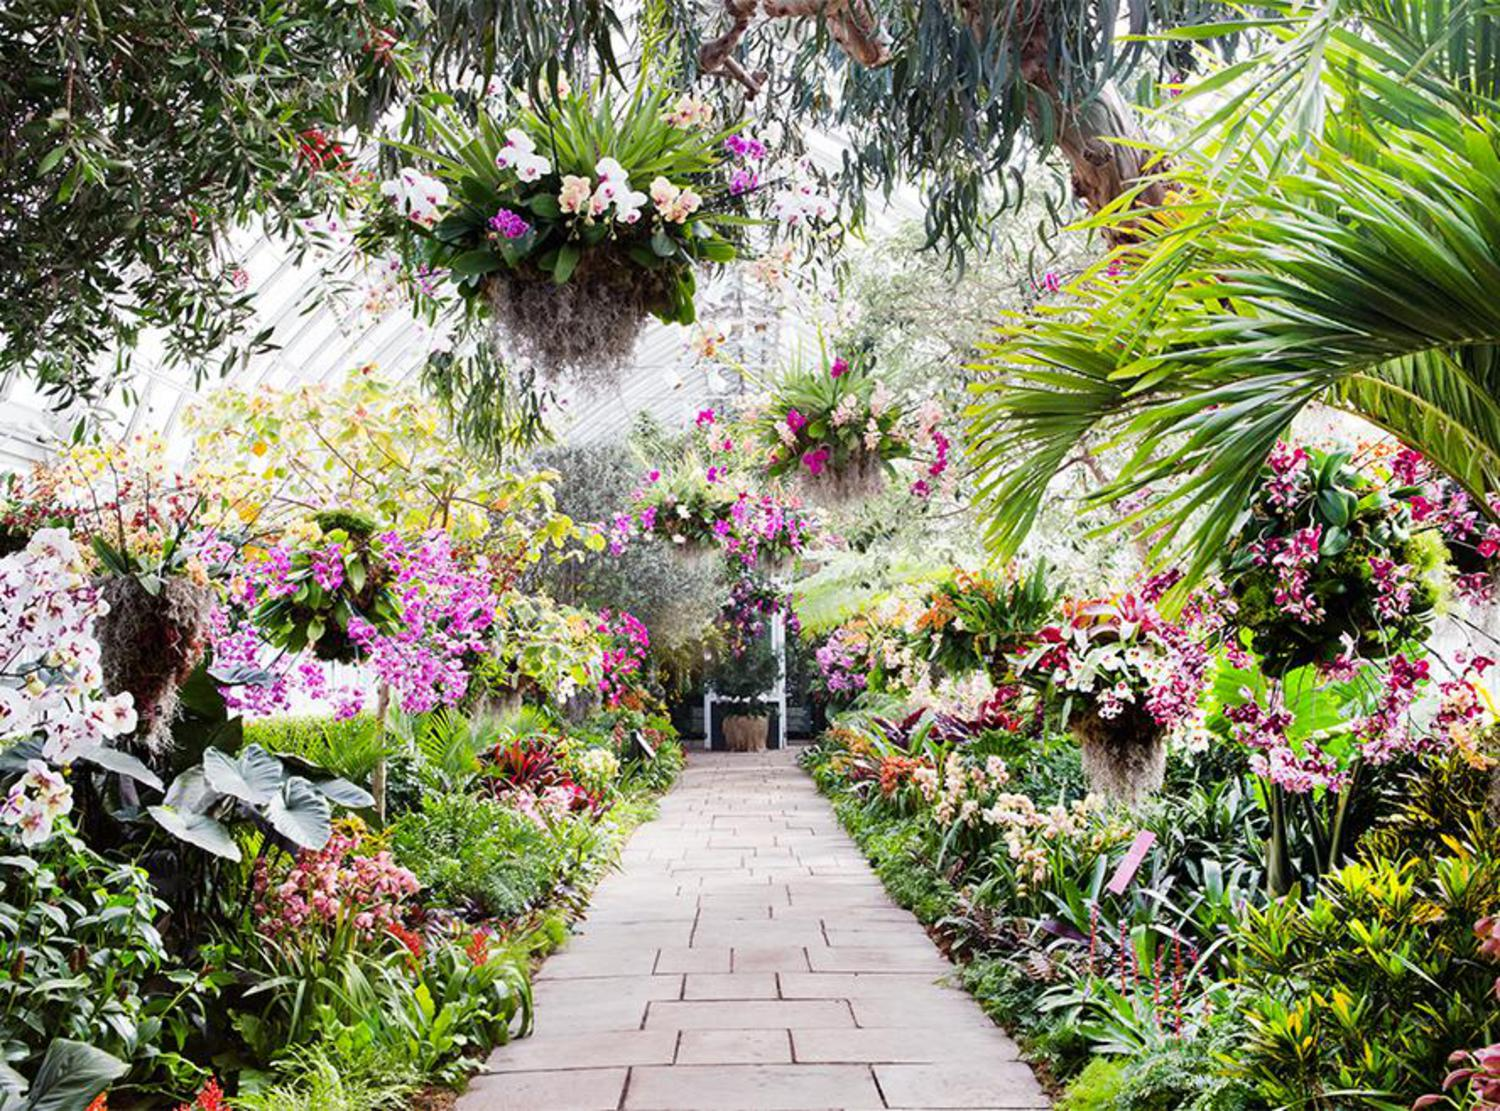 The show took two weeks to put together but months of cultivating to make sure the buds bloomed at the same time, said Marc Hachadourian, Director of Nolen Greenhouses for the New York Botanical Garden.